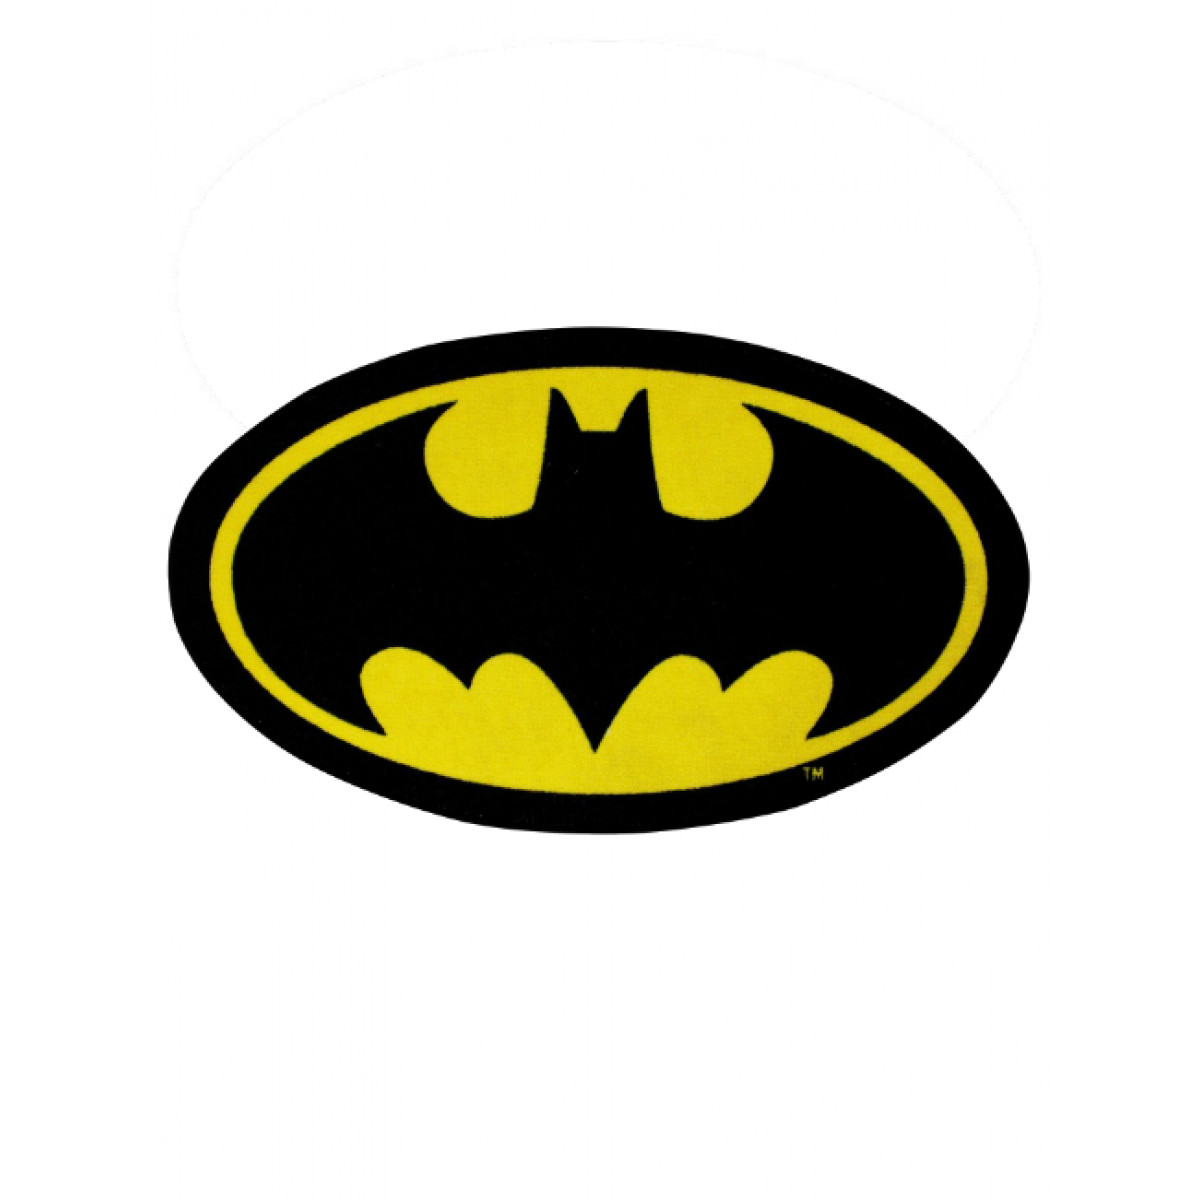 Batman bedroom rugs